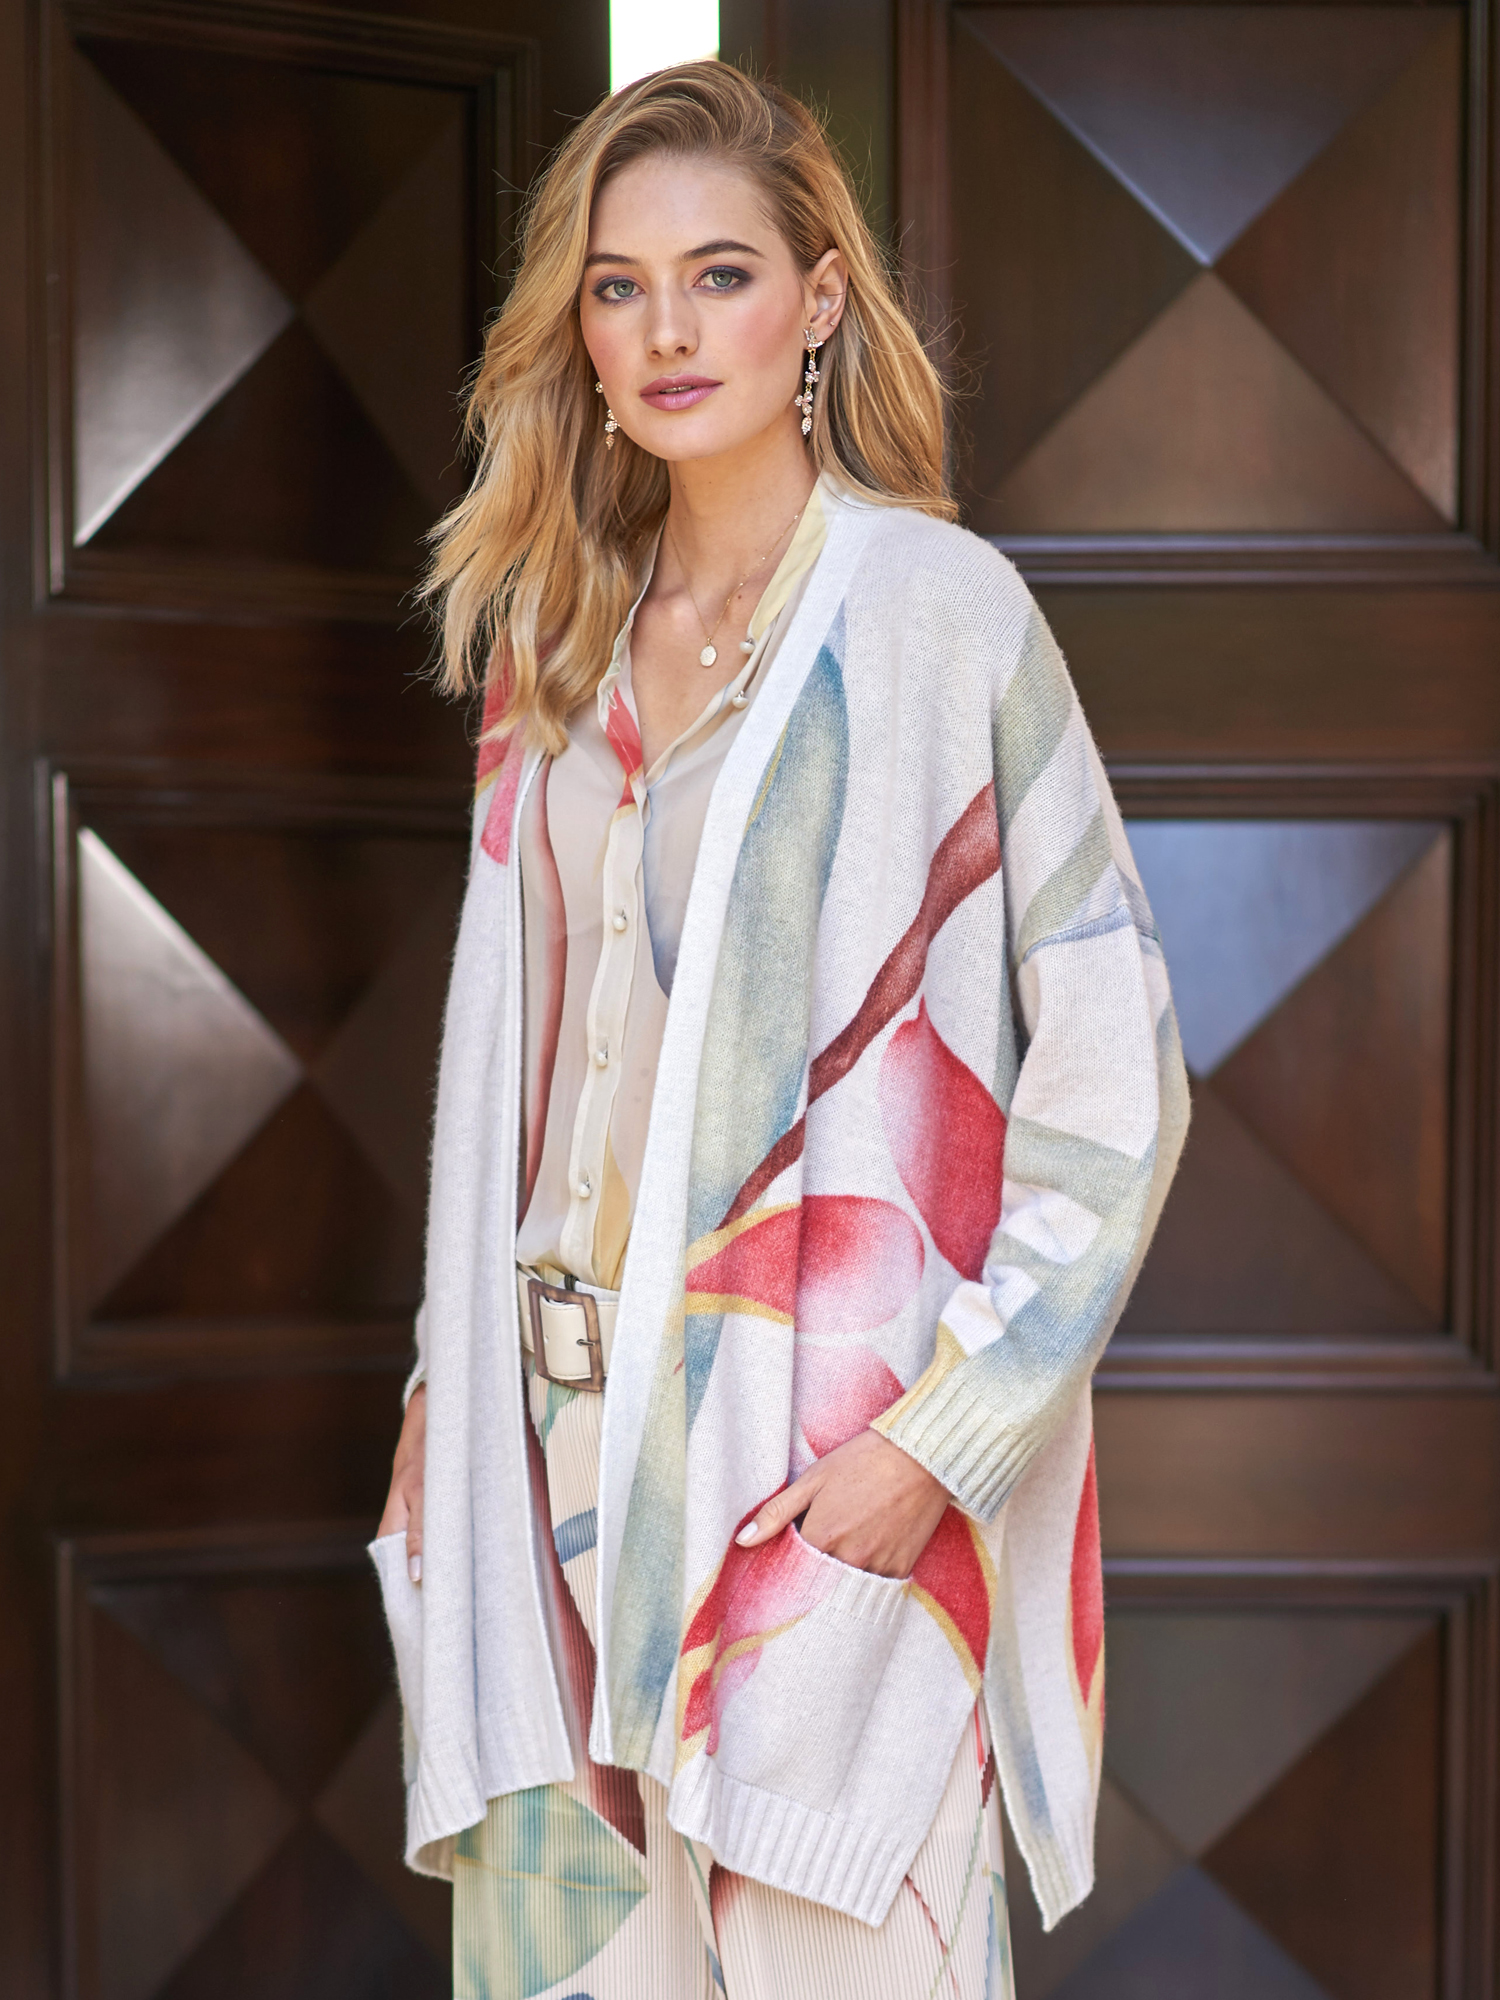 60 Best Images About Style Scarves On Pinterest: Ceel Foliage Print Cardigan